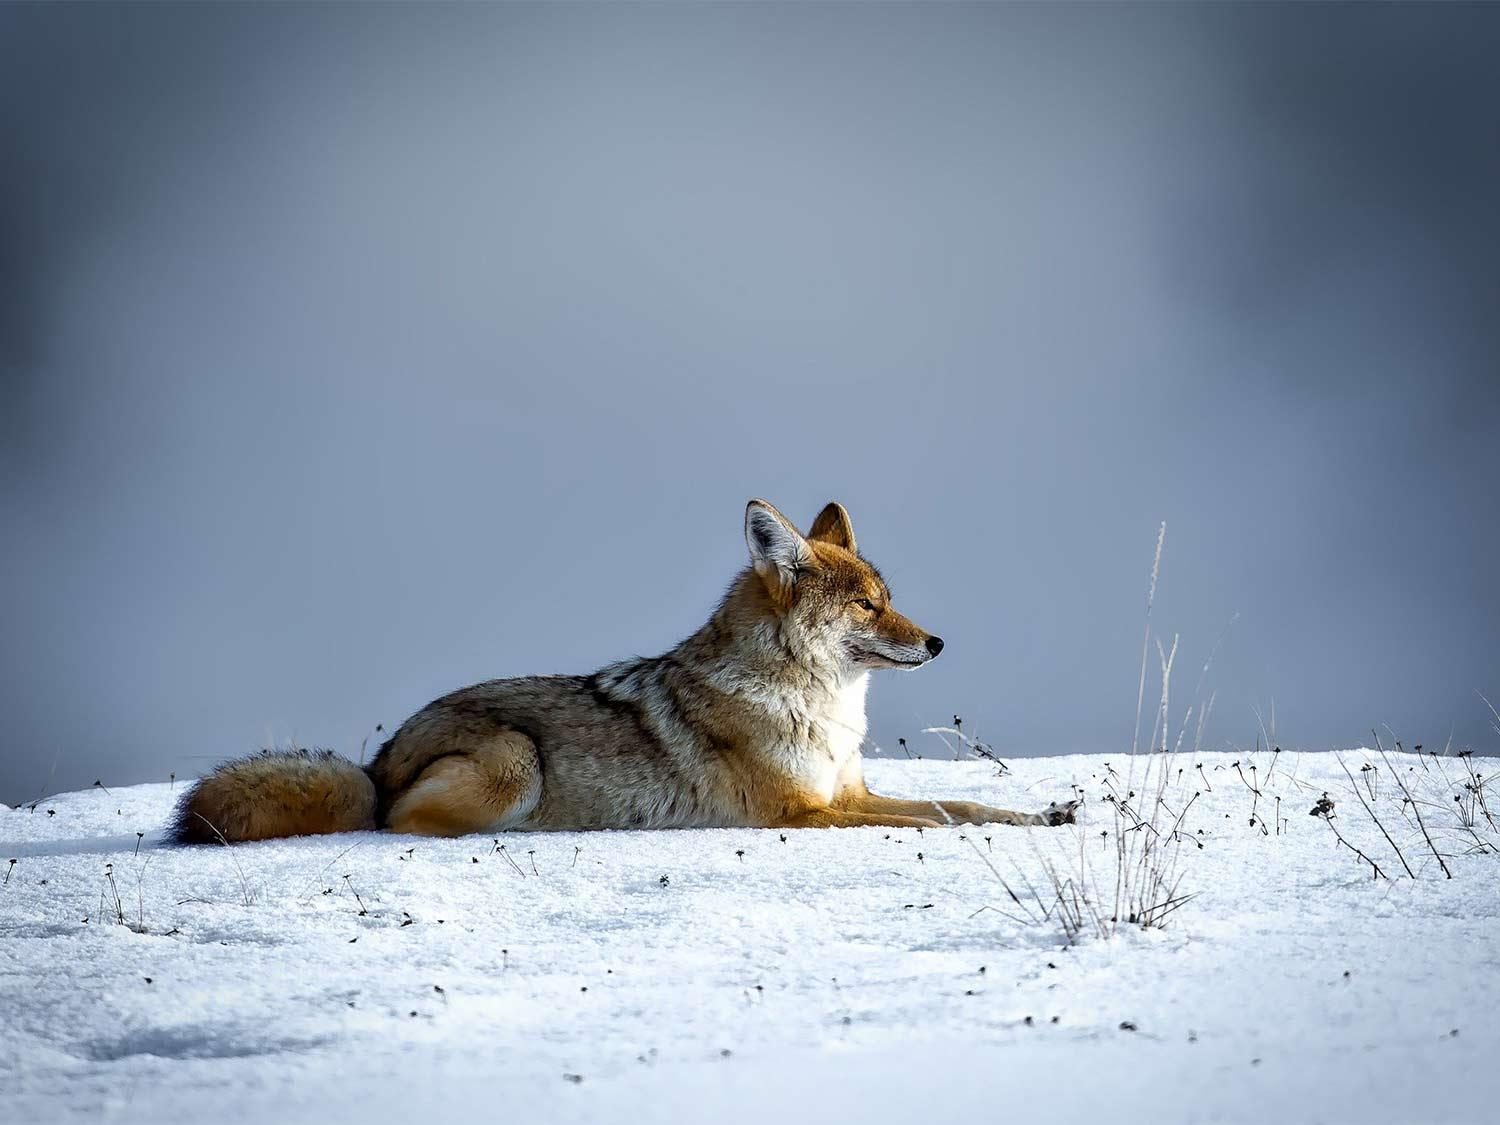 A coyote in the snow.